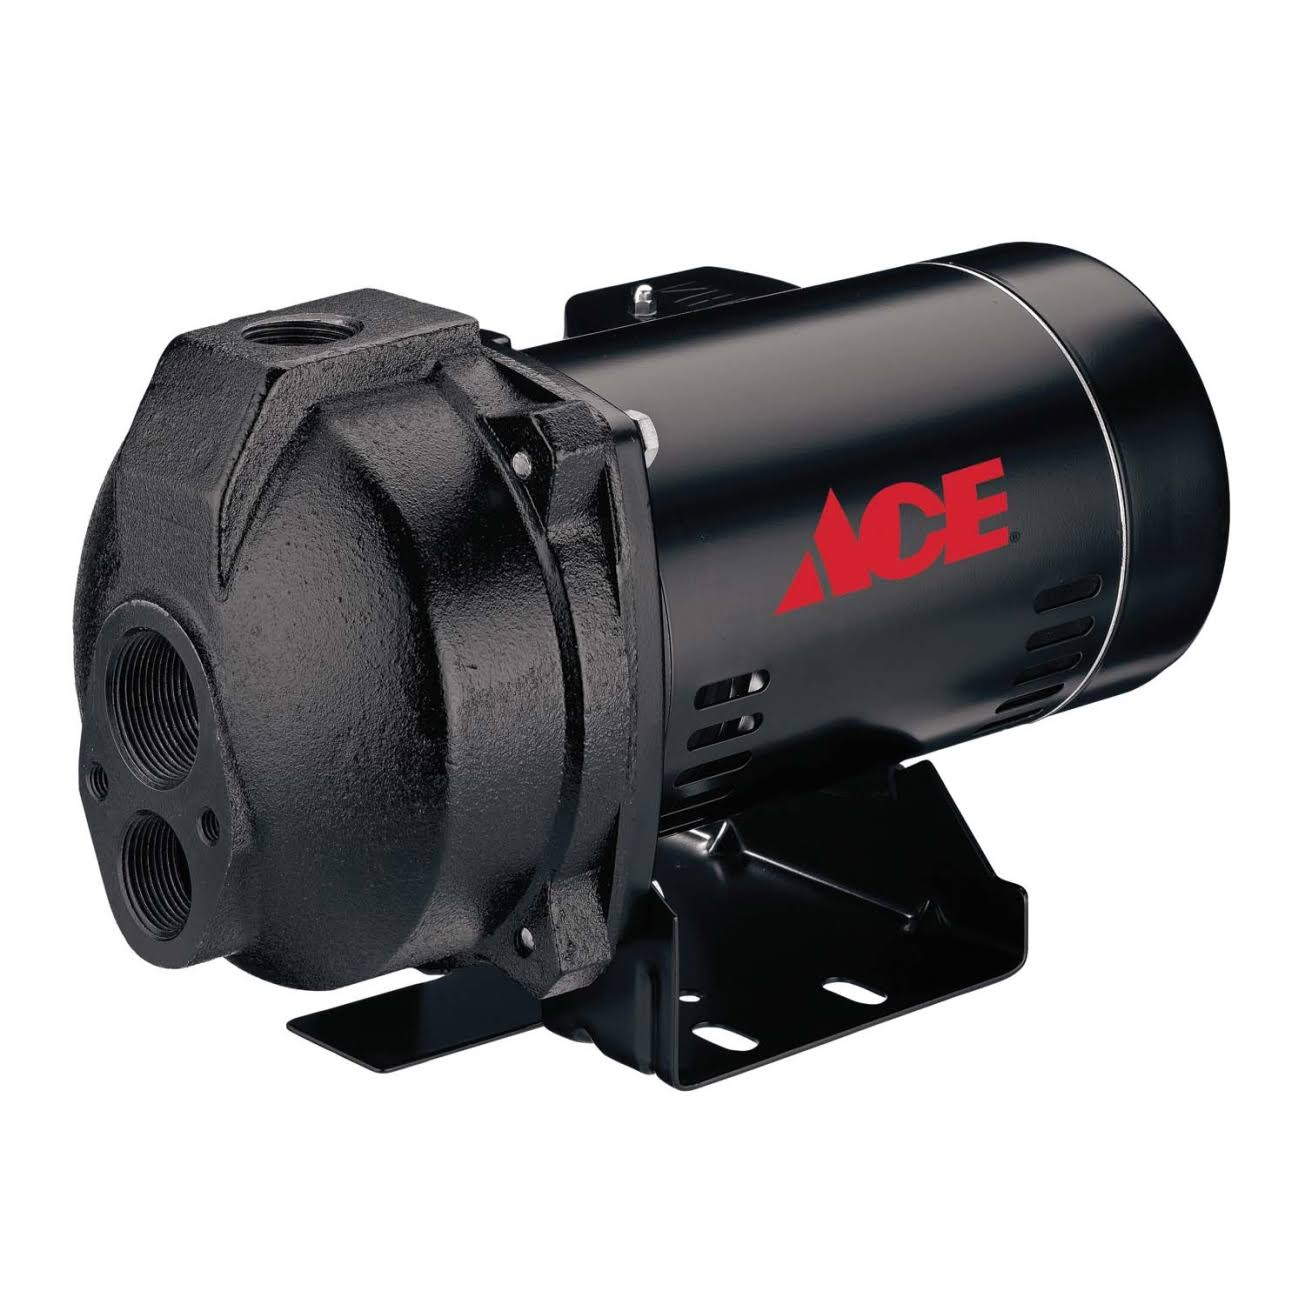 Ace ACE5C 1/2 HP 9 Cast Iron Convertible Jet Pump